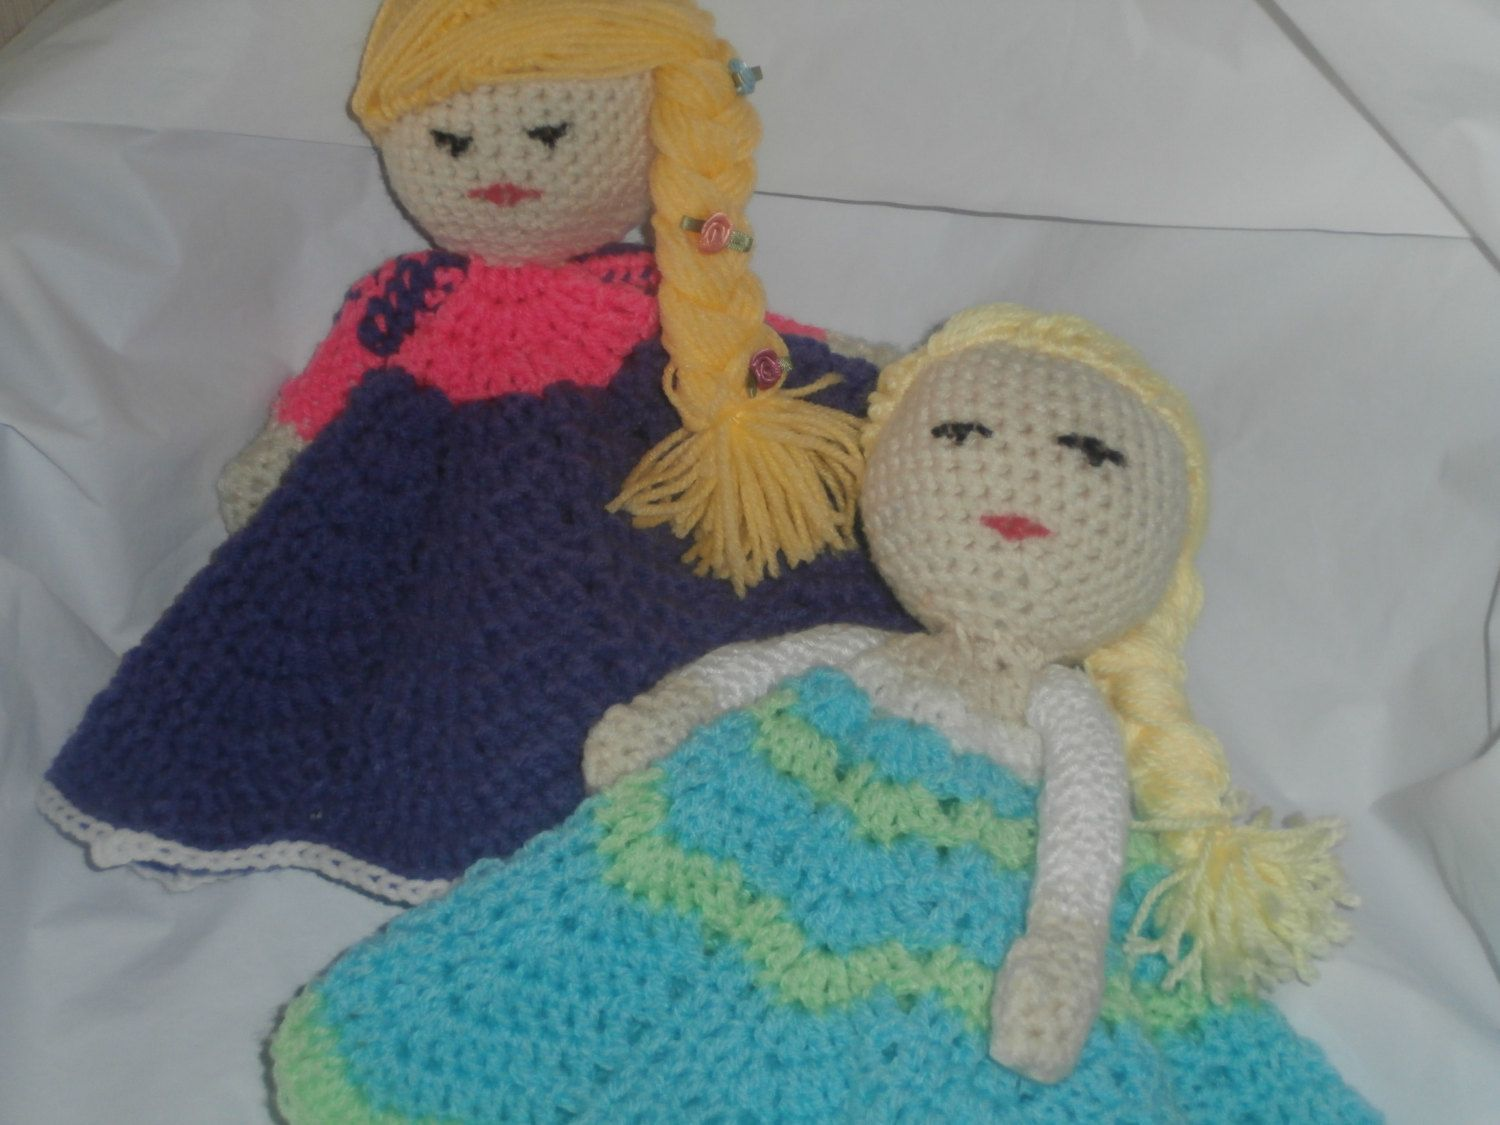 Crocheted baby buddy blanket doll. Crocheted your way.  Princess characters . Convo me with which one you would prefer. by ArtbySethHouse on Etsy